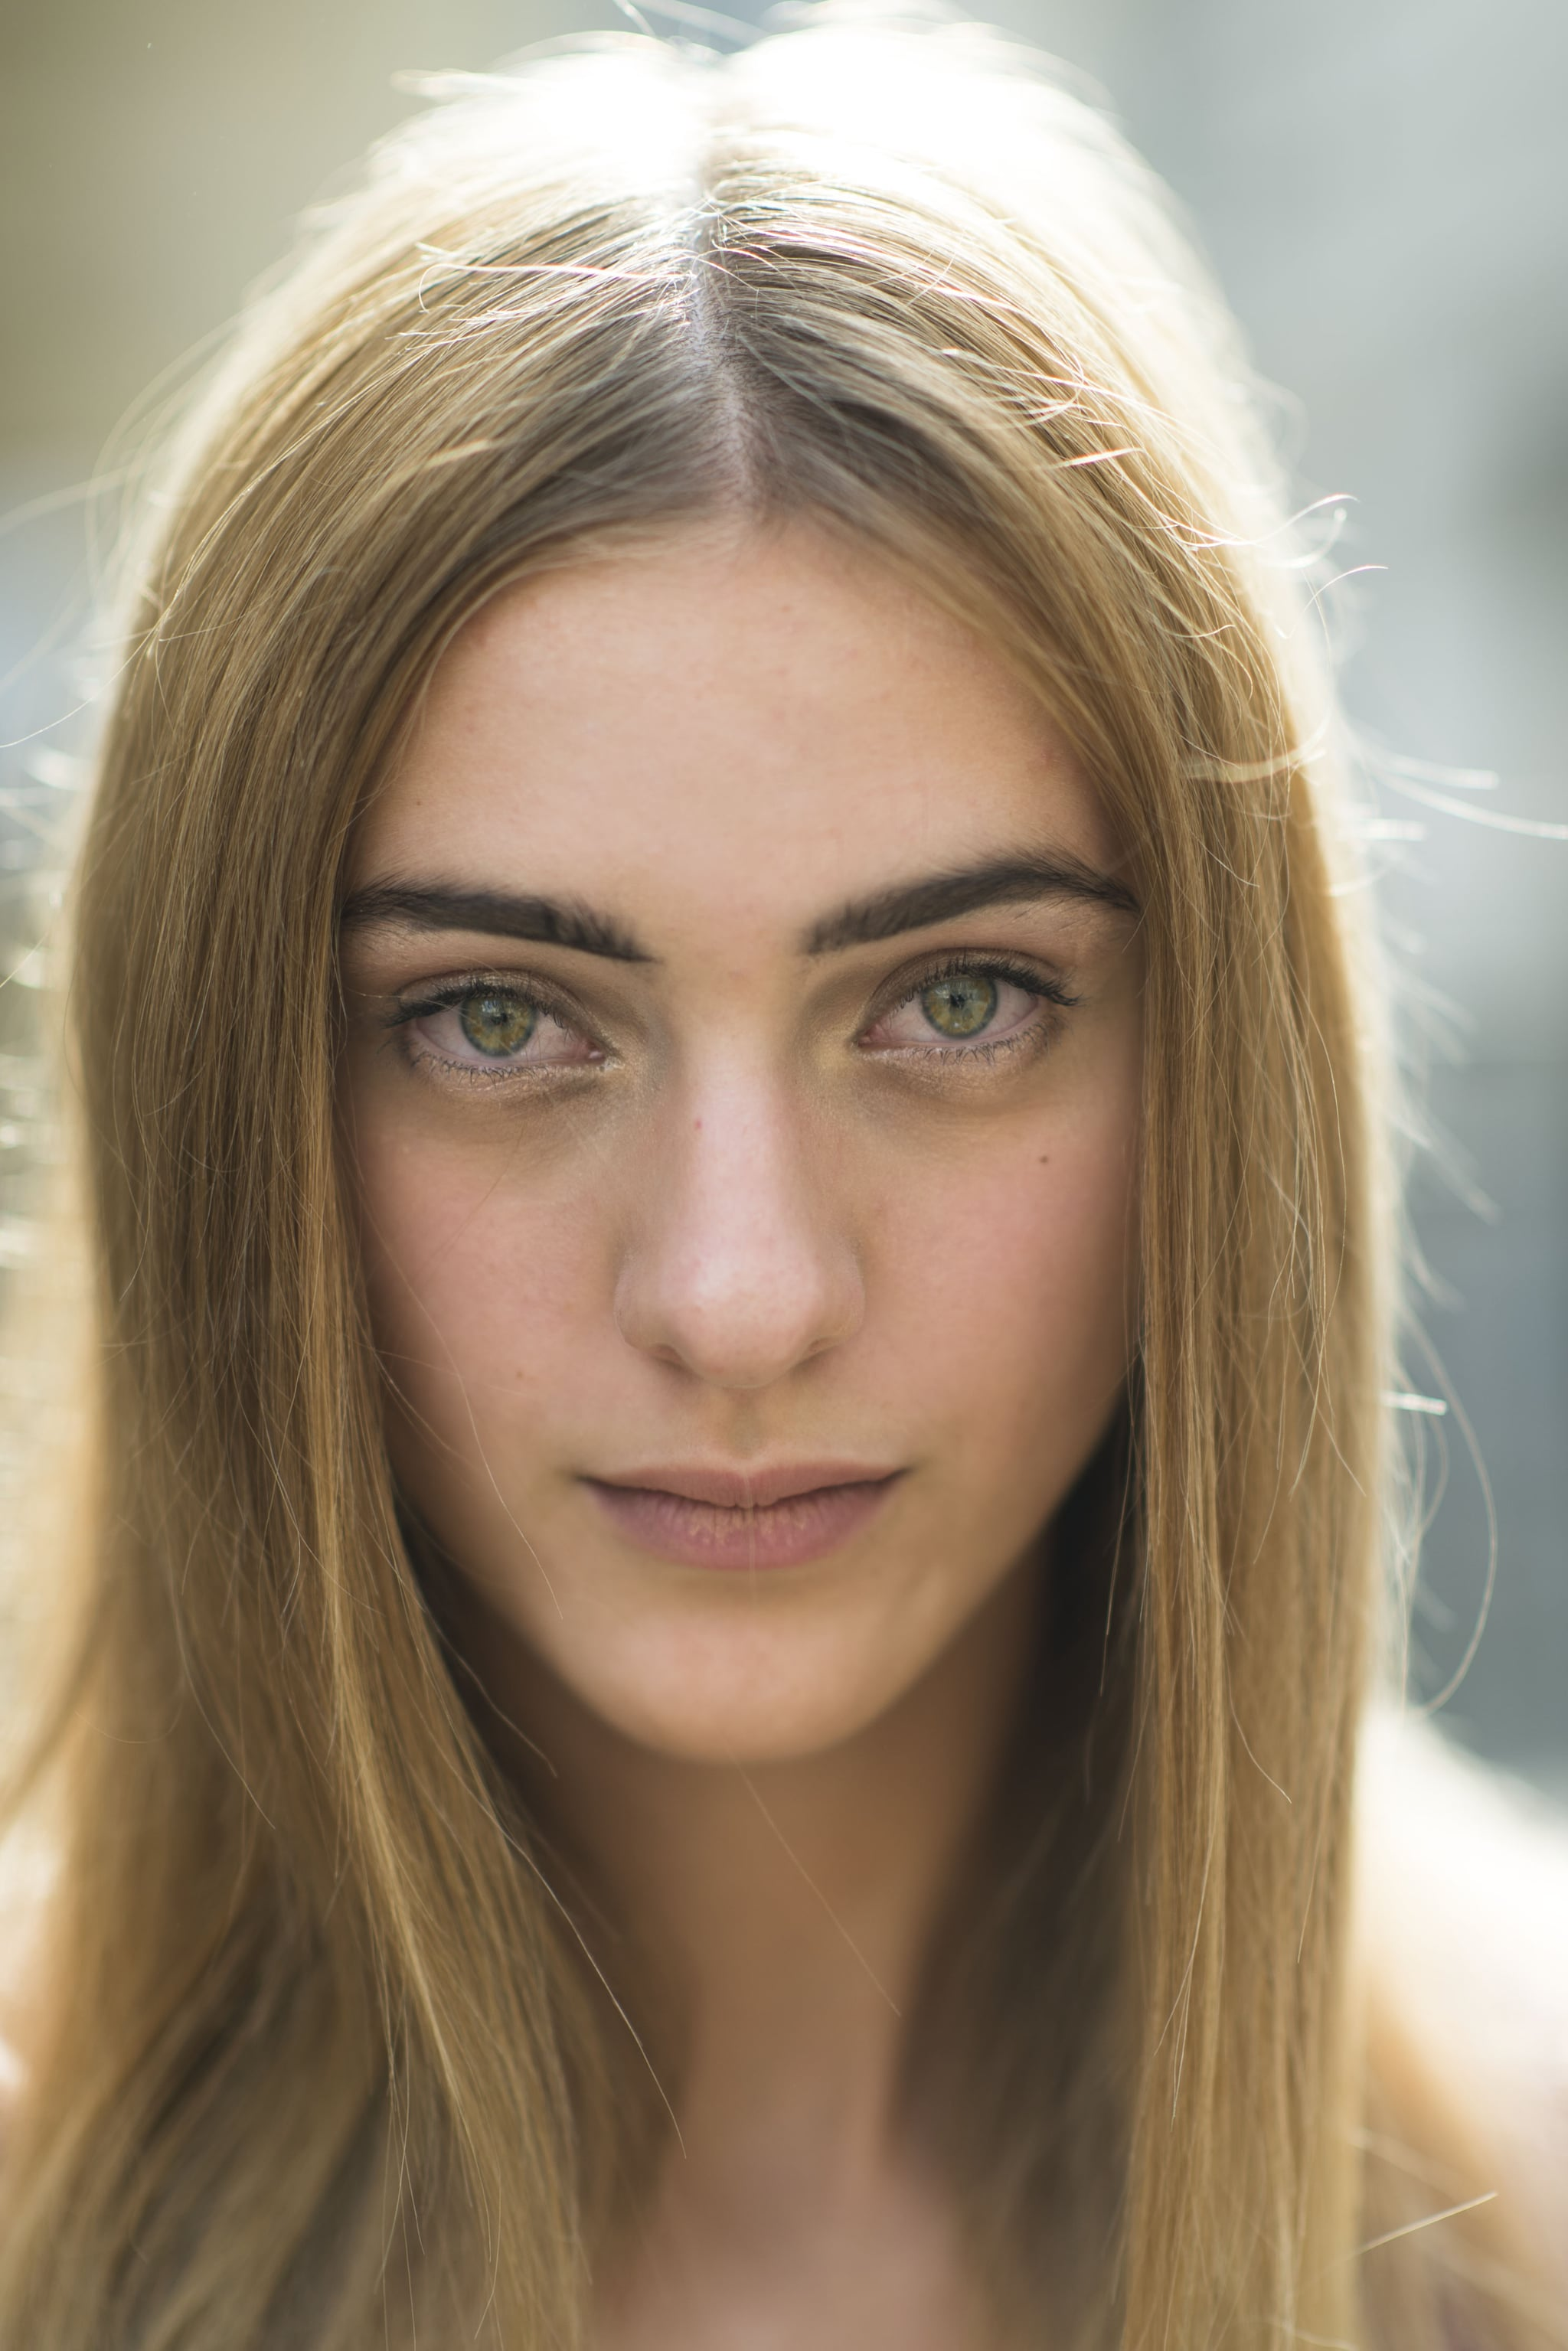 A center part and dark brows perfectly framed her face. Source: Le 21ème | Adam Katz Sinding